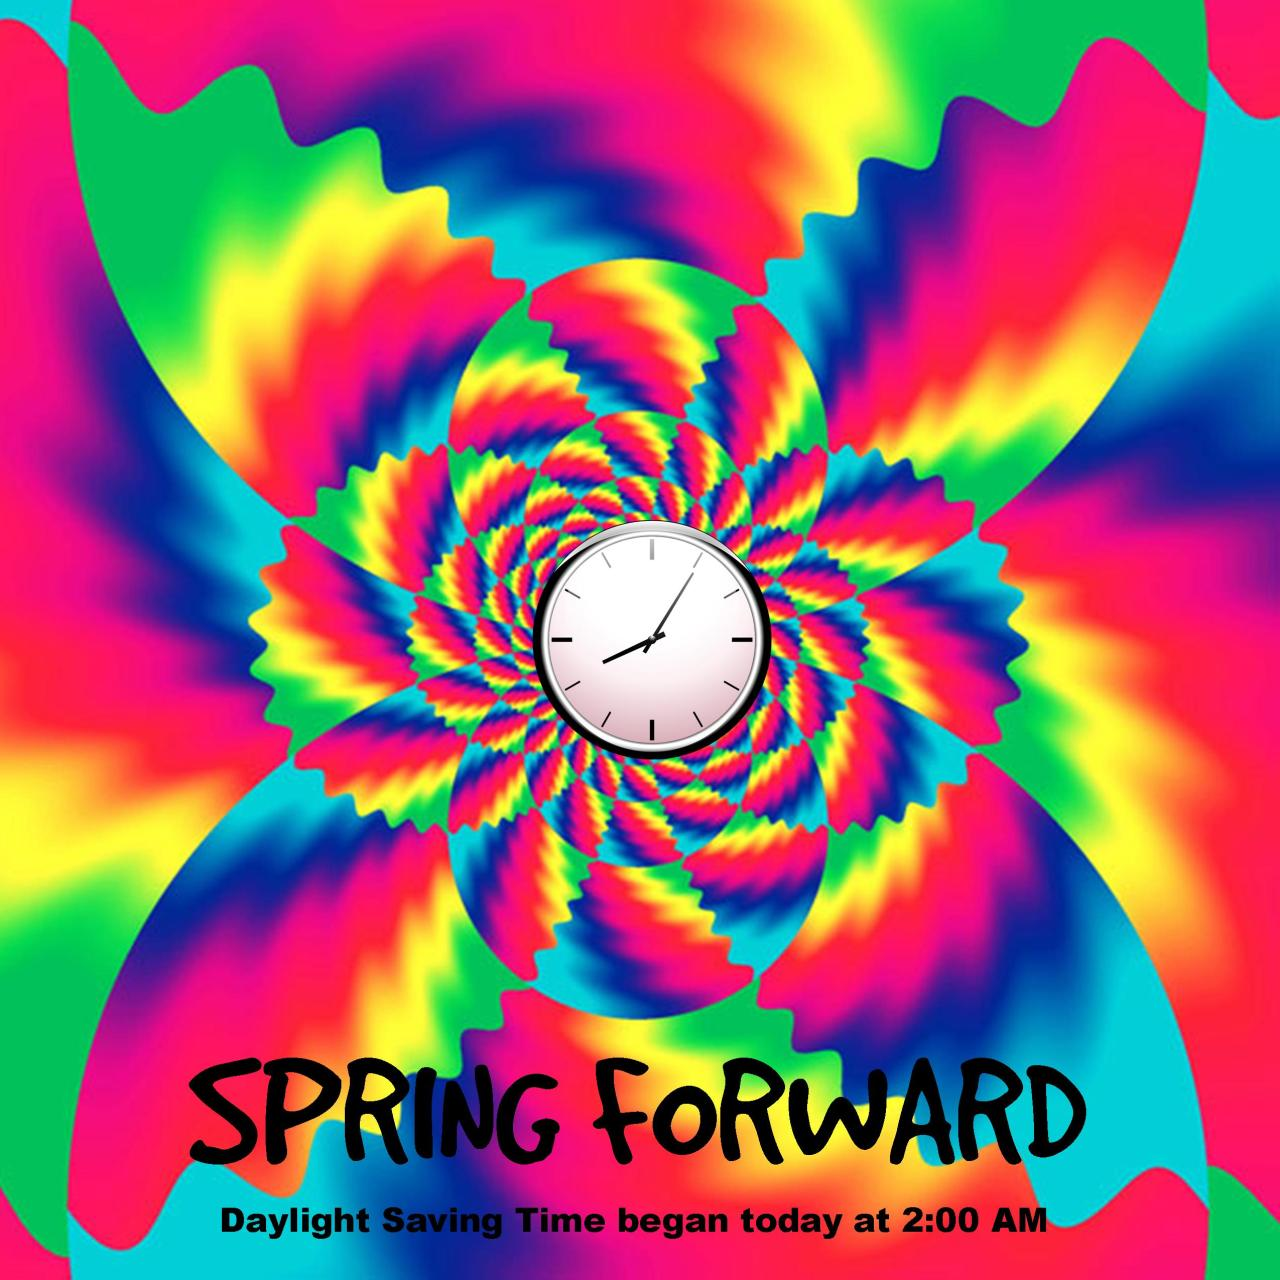 Remember #DaylightSaving started this morning (March 8th) at 2:00am.  Time to #Spring forward!